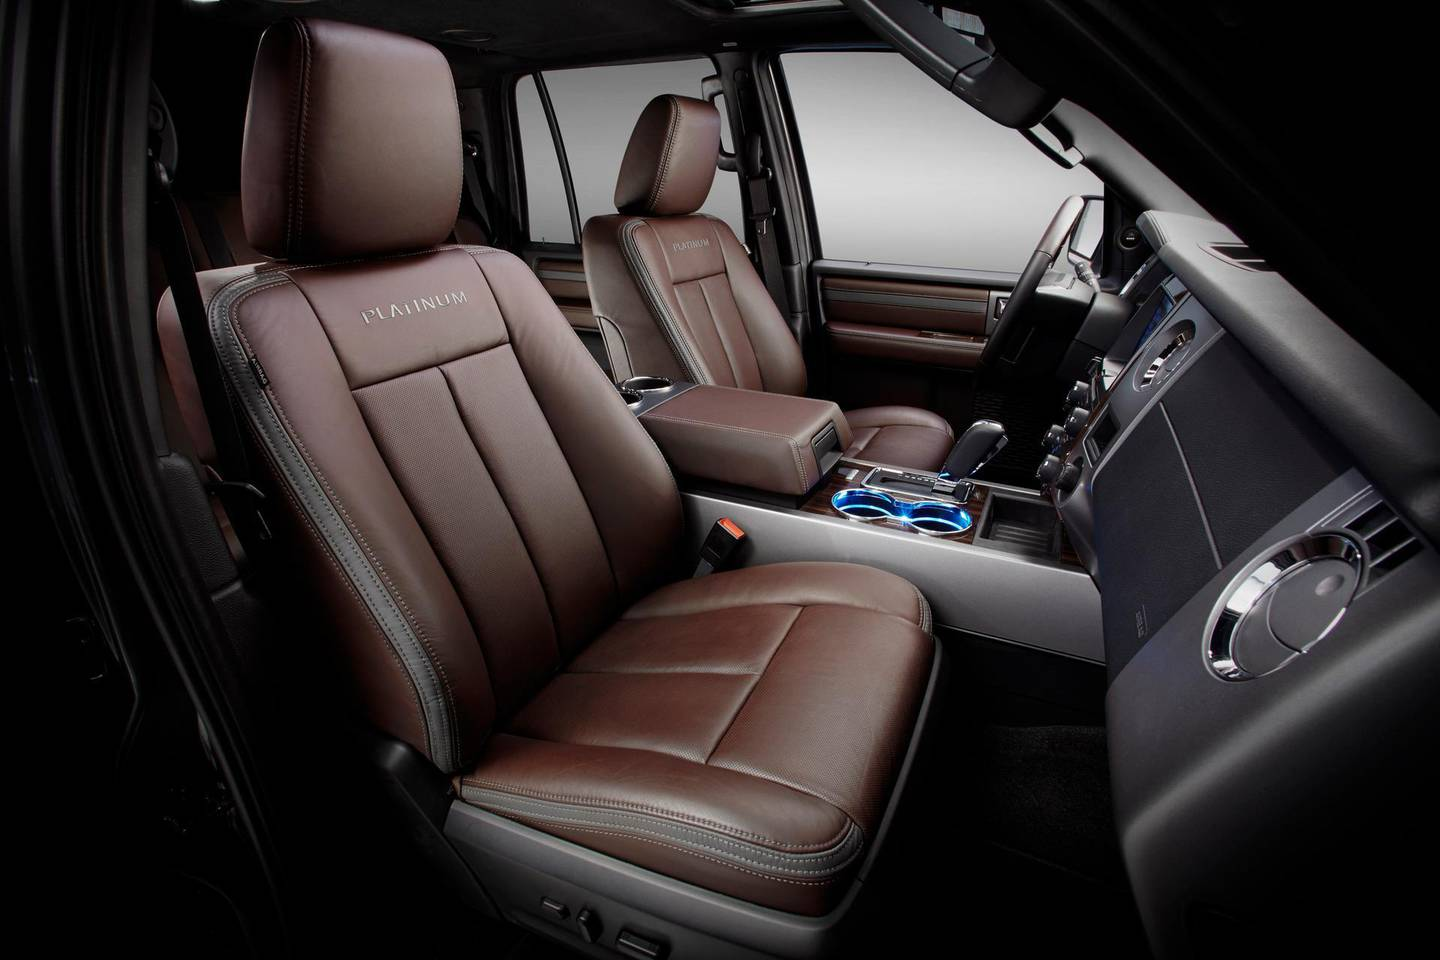 The new 2015 Ford Expedition is available with SYNC® with MyFord Touch®, ambient LED interior lighting and a new sophisticated Brunello leather interior exclusive to the new Platinum trim.